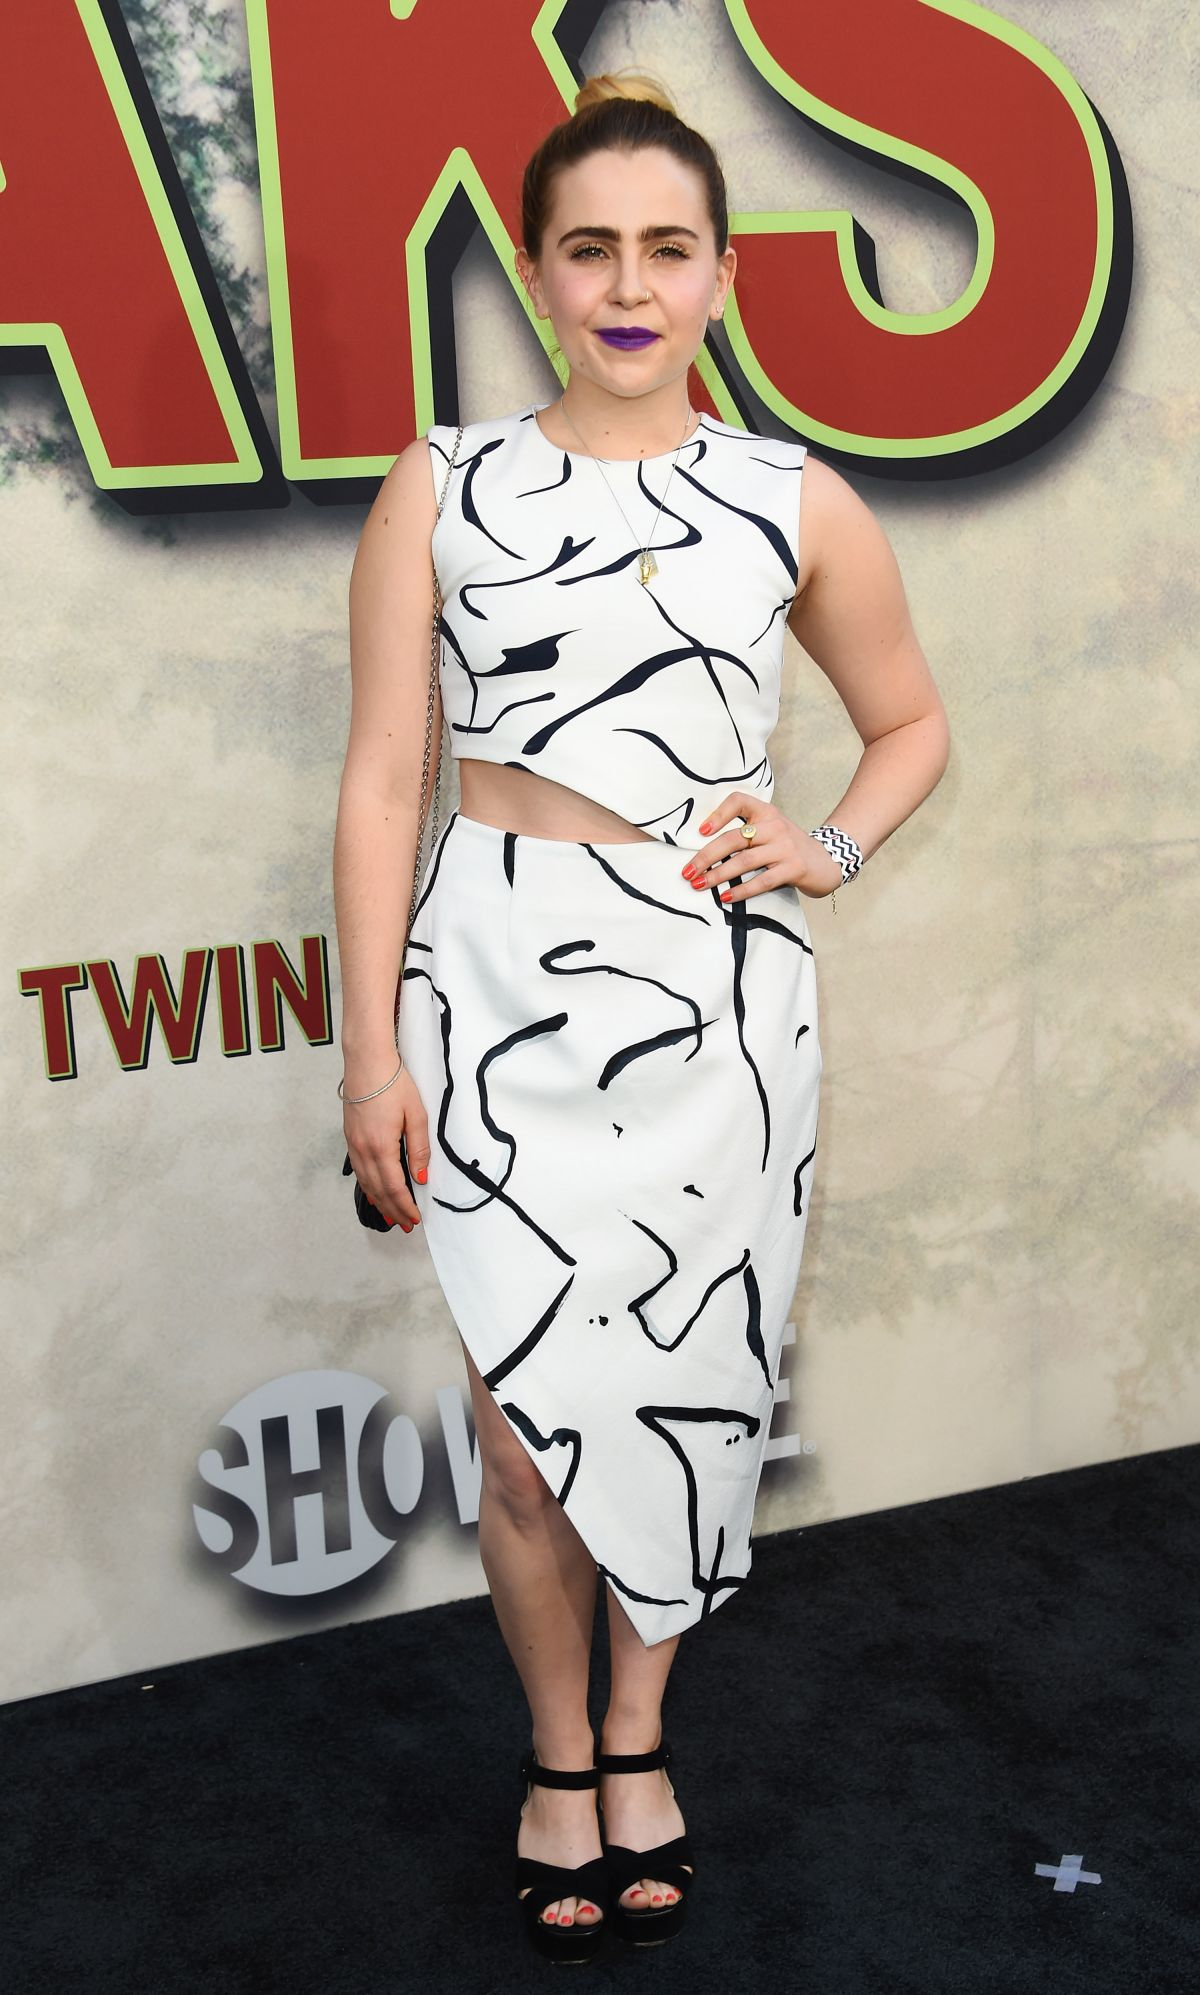 MAE WHITMAN at Twin Peaks Premiere in Los Angeles 05/19/2017